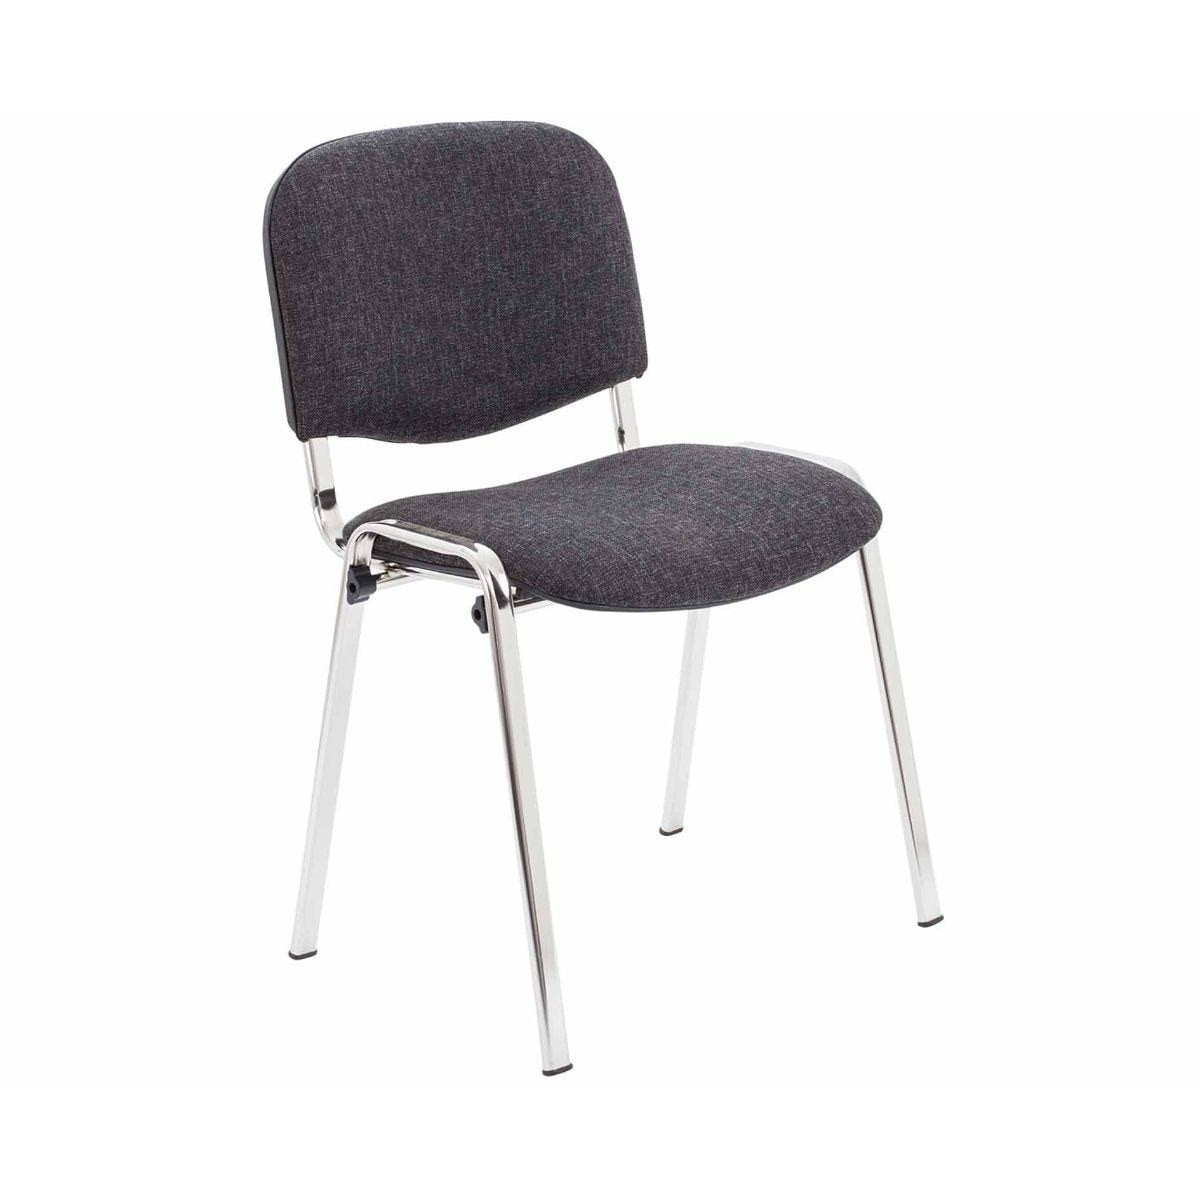 Desk Chairs | Office Chairs & Furniture | Ryman® UK